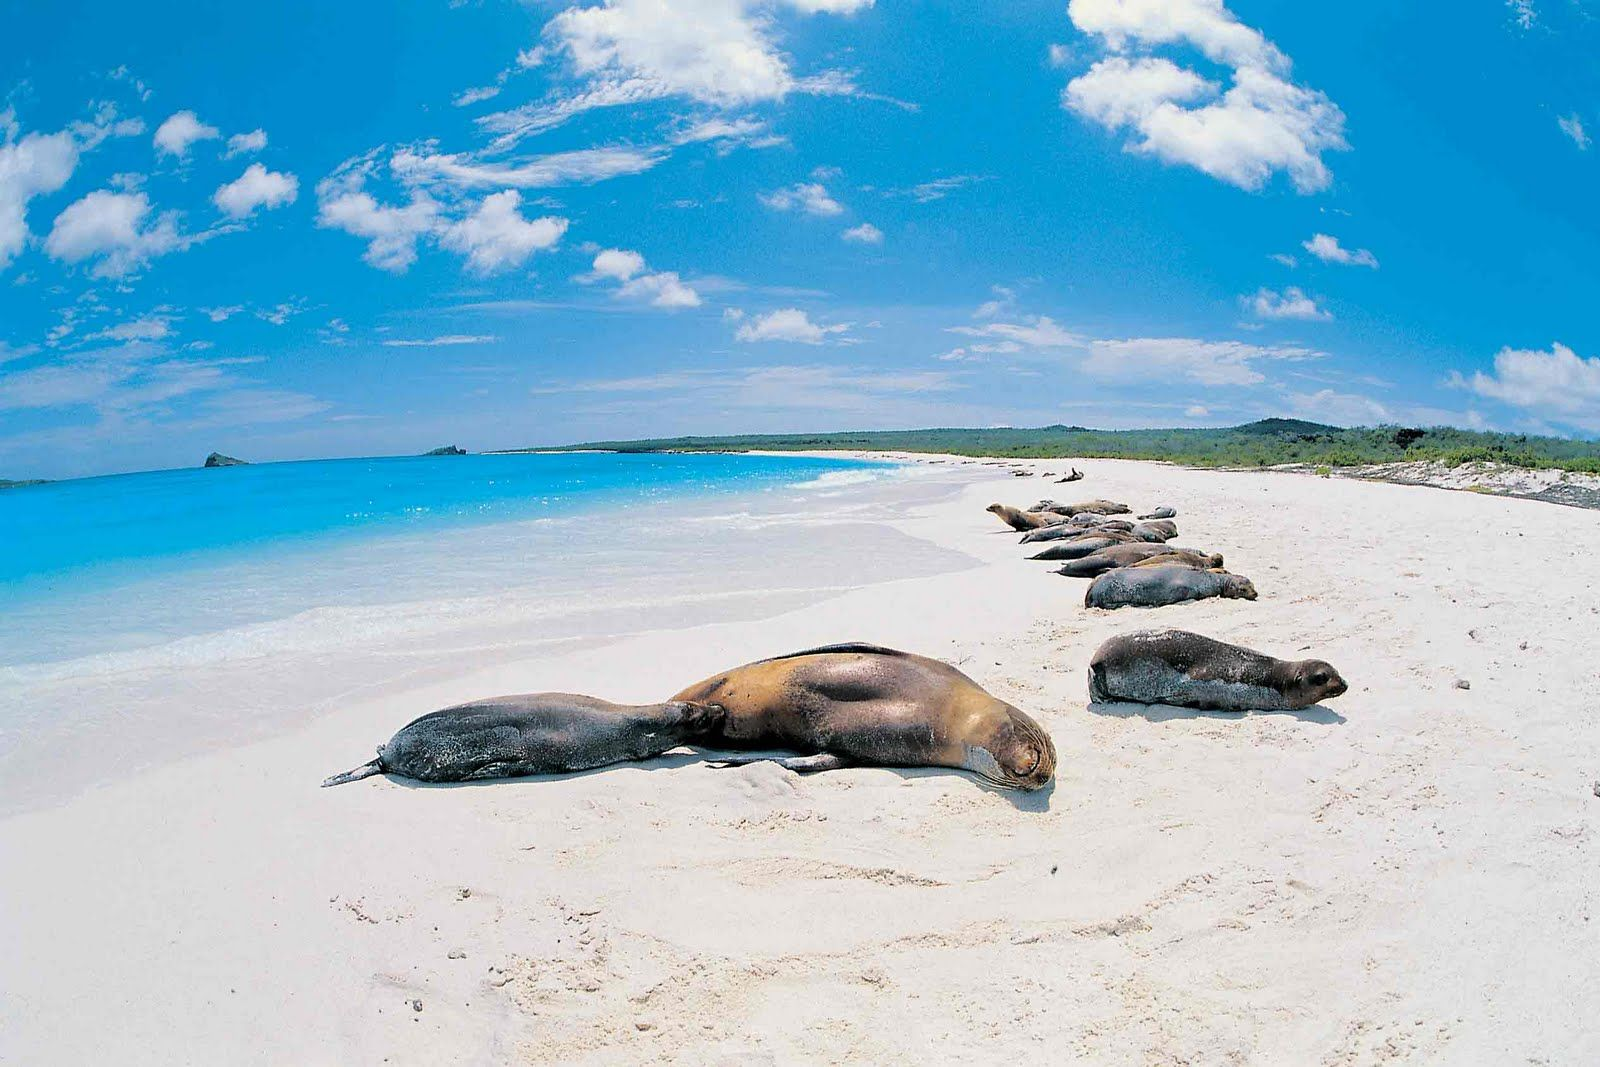 """Galápagos Islands - """"Nothing will prepare you for what the Galapagos Islands have to offer"""", says the ad, and it couldn't be more true..."""